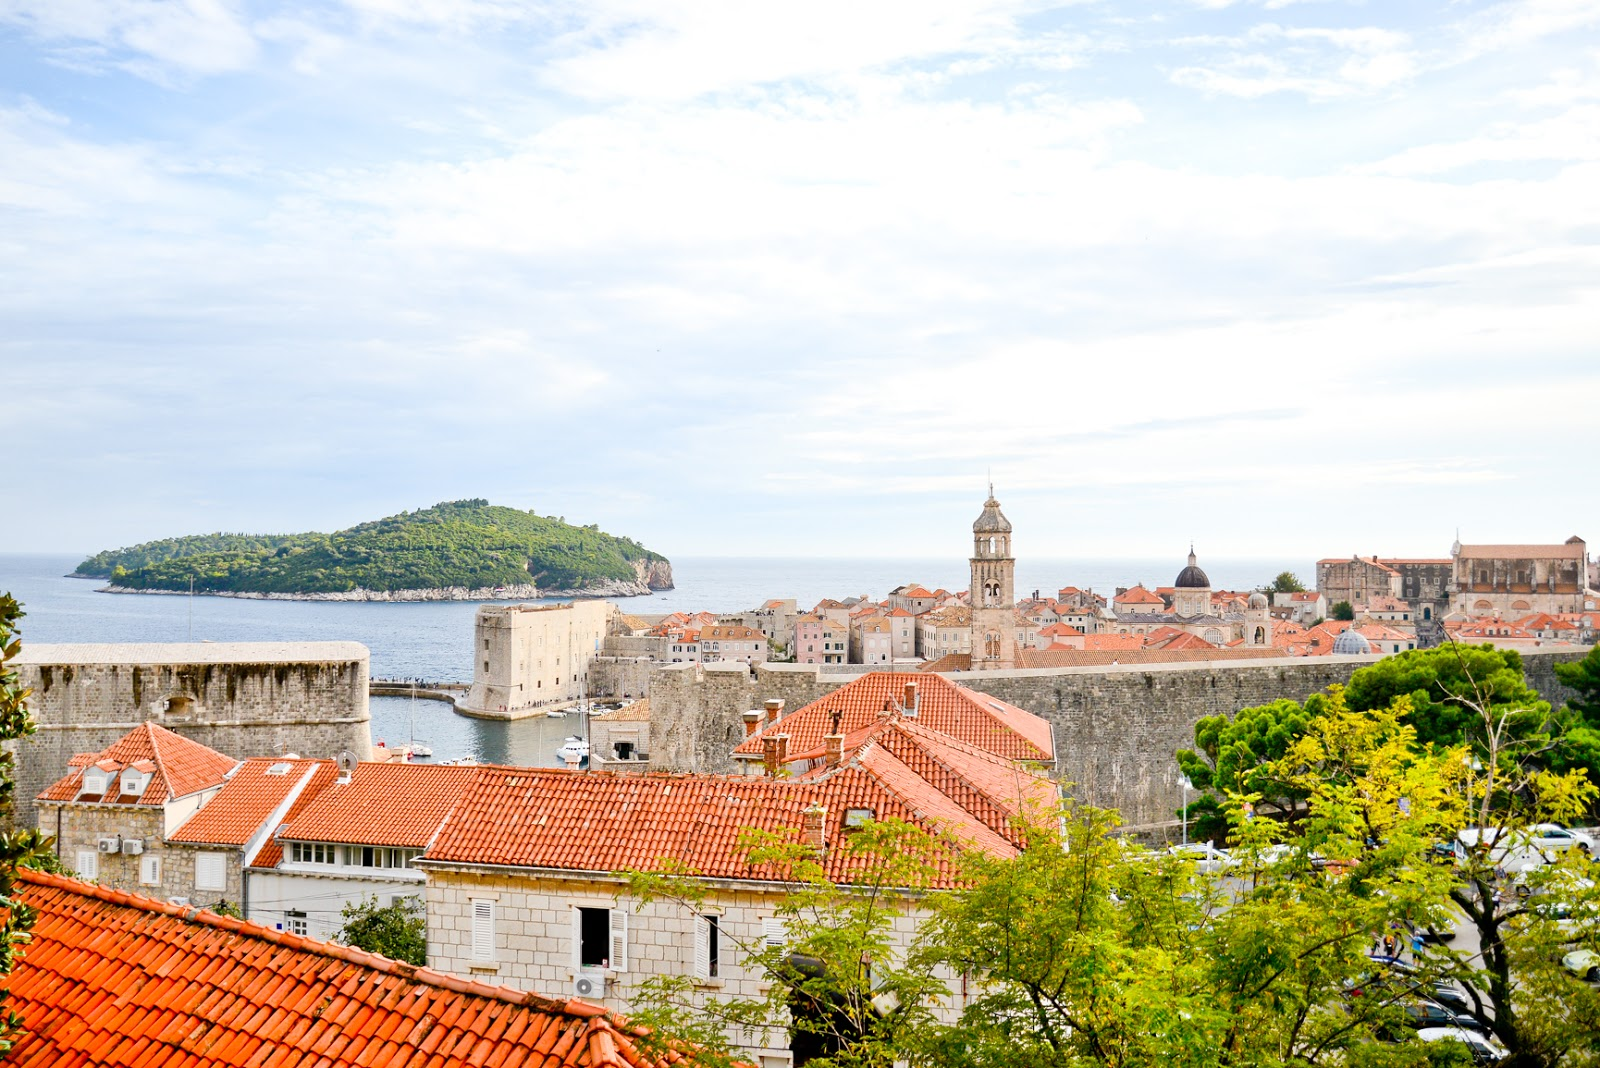 dubrovnik, dubrovnik old town, dubrovnik as a vegetarian, city wall walk, kings landing,  game of thrones dubrovnik, game of thrones filming locations dubrovnik